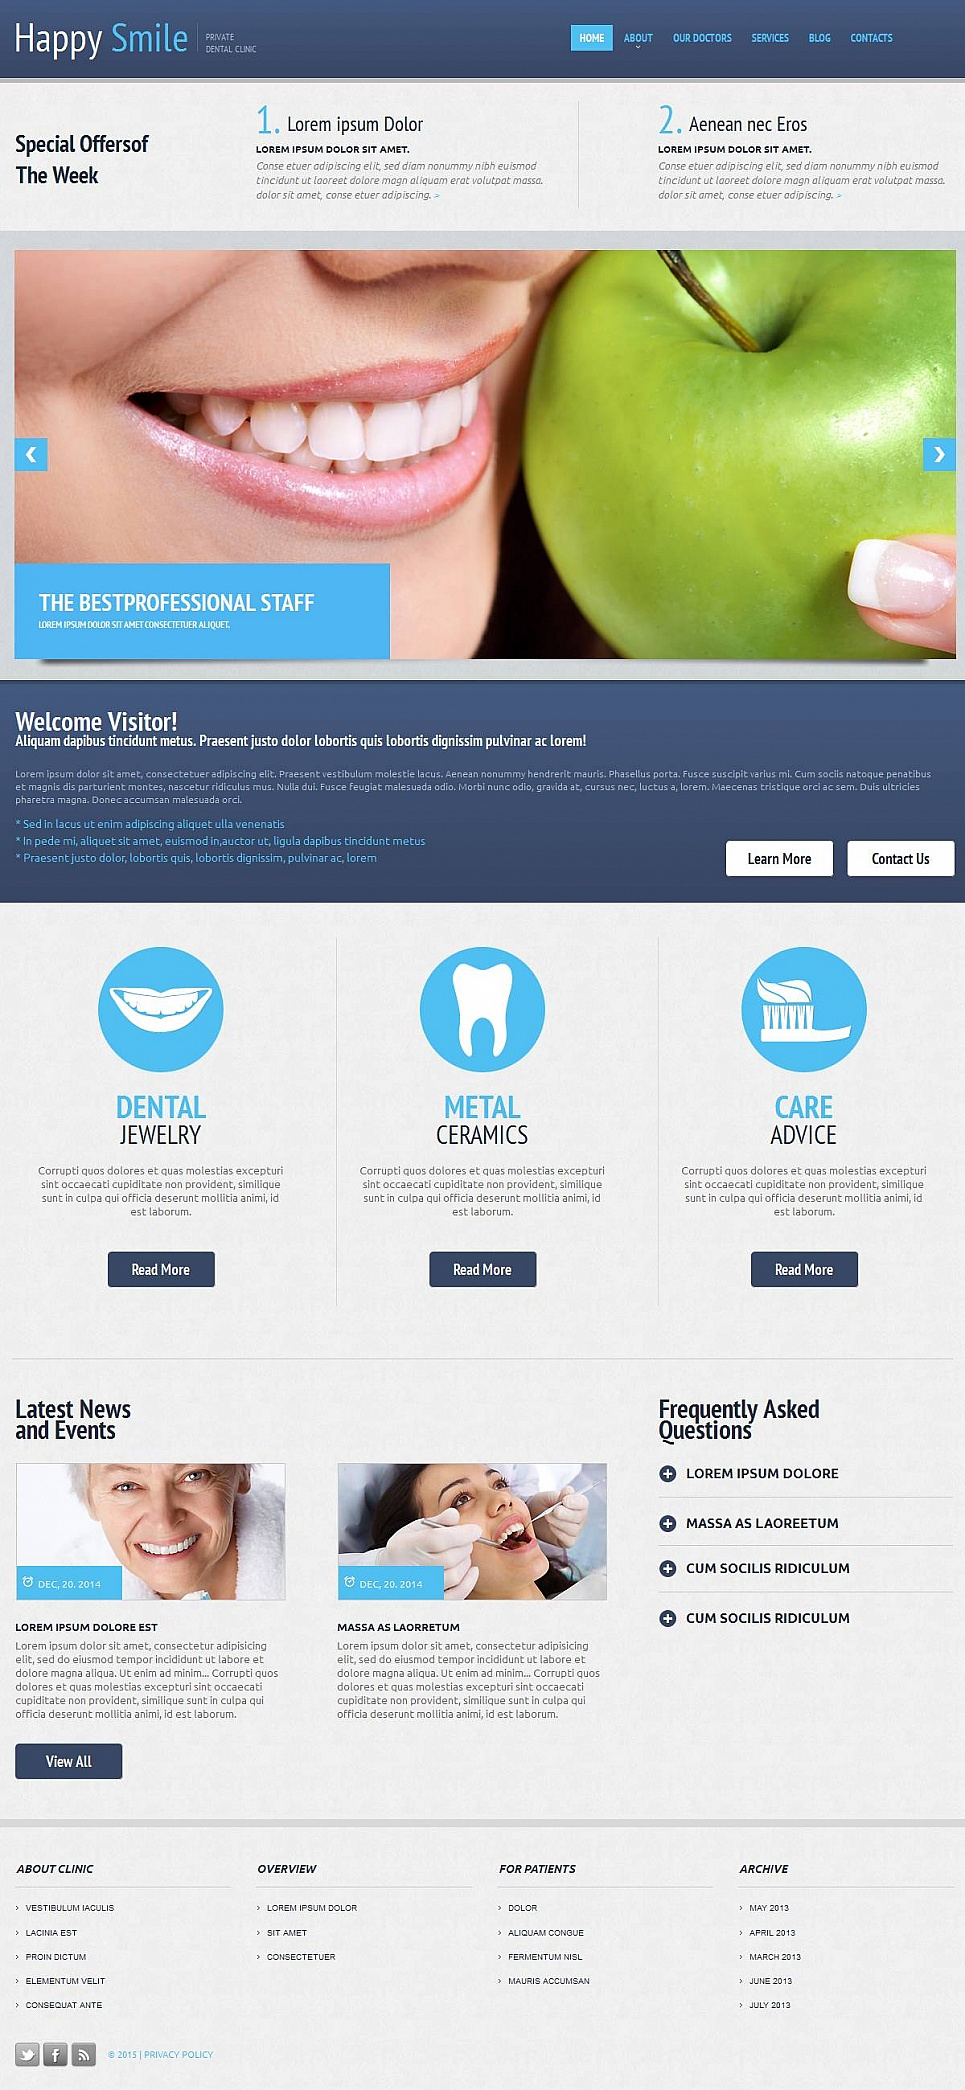 Complete Dentist Website Design - image